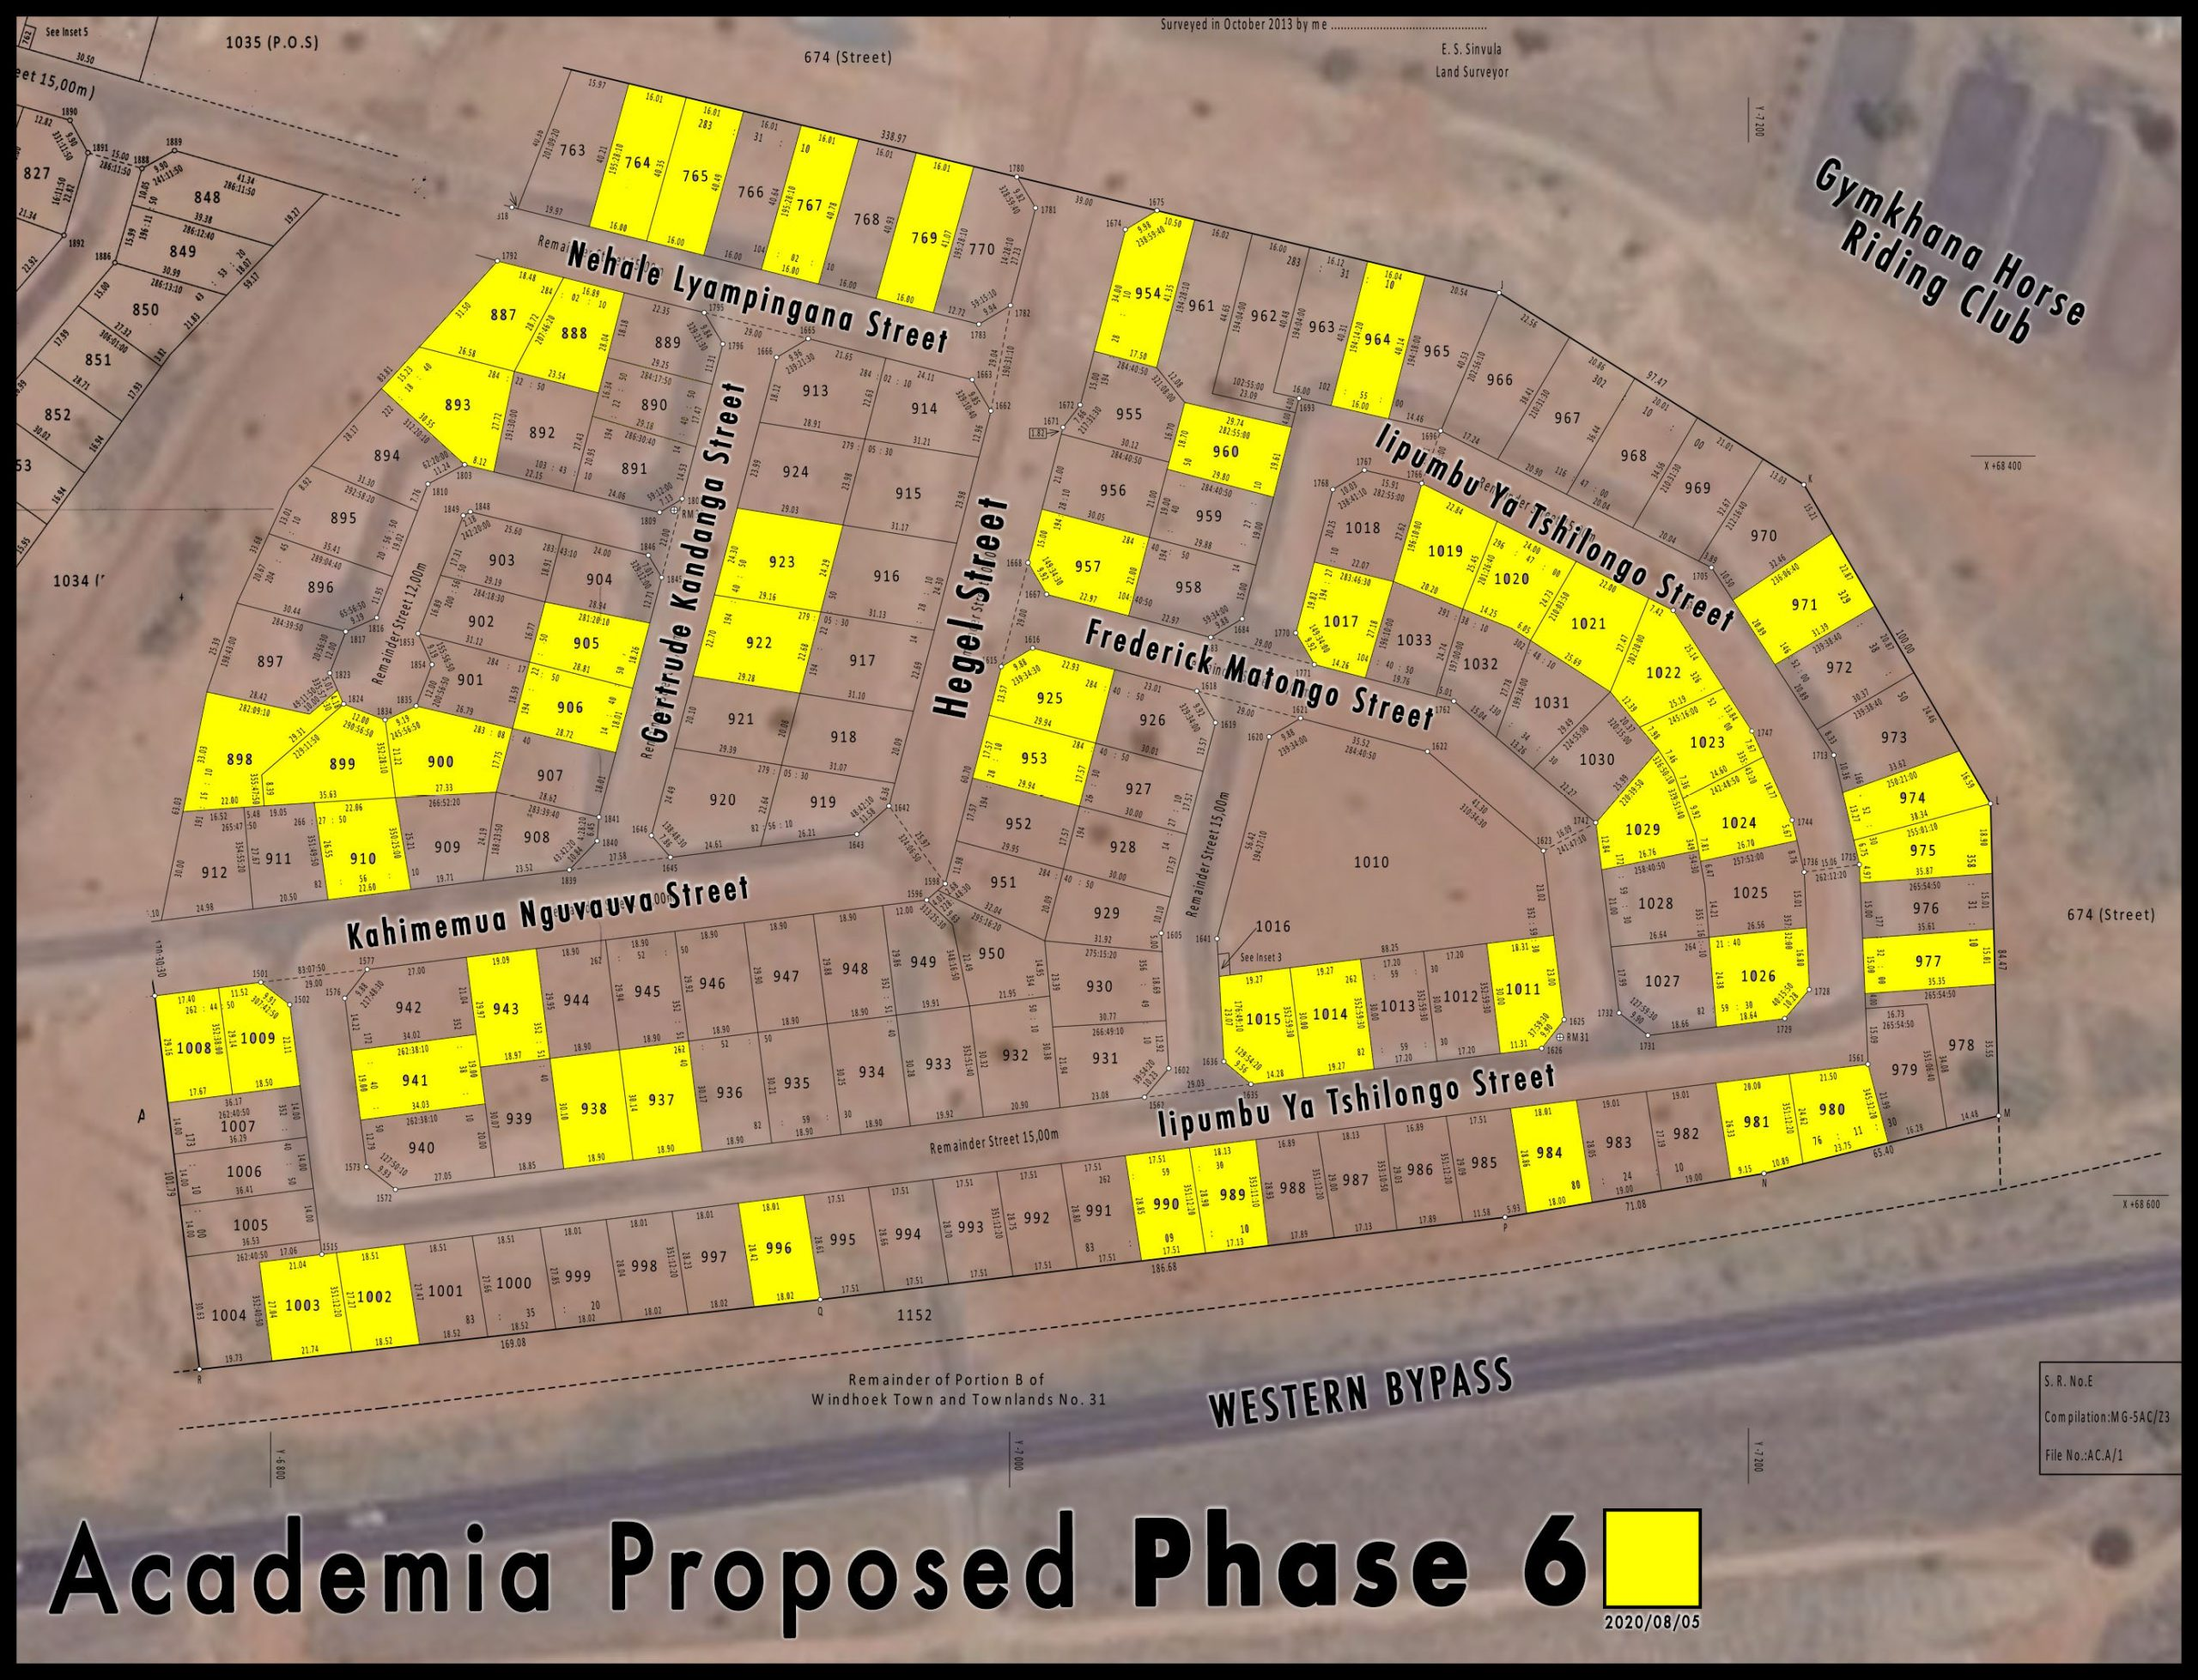 Academia Phase 6 available Residential & Commercial ervens